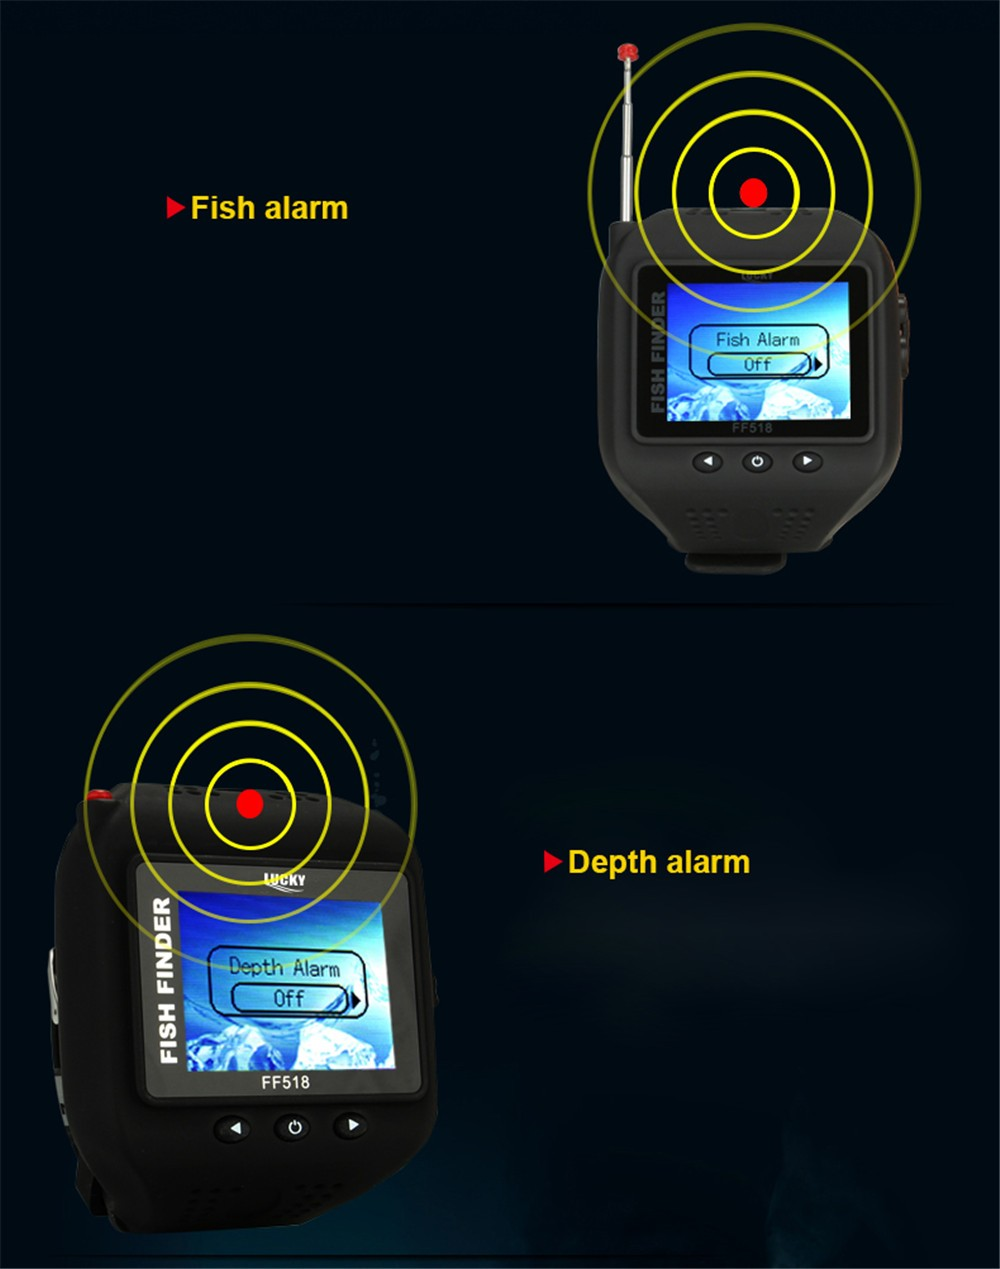 ff518 fish finder-_08